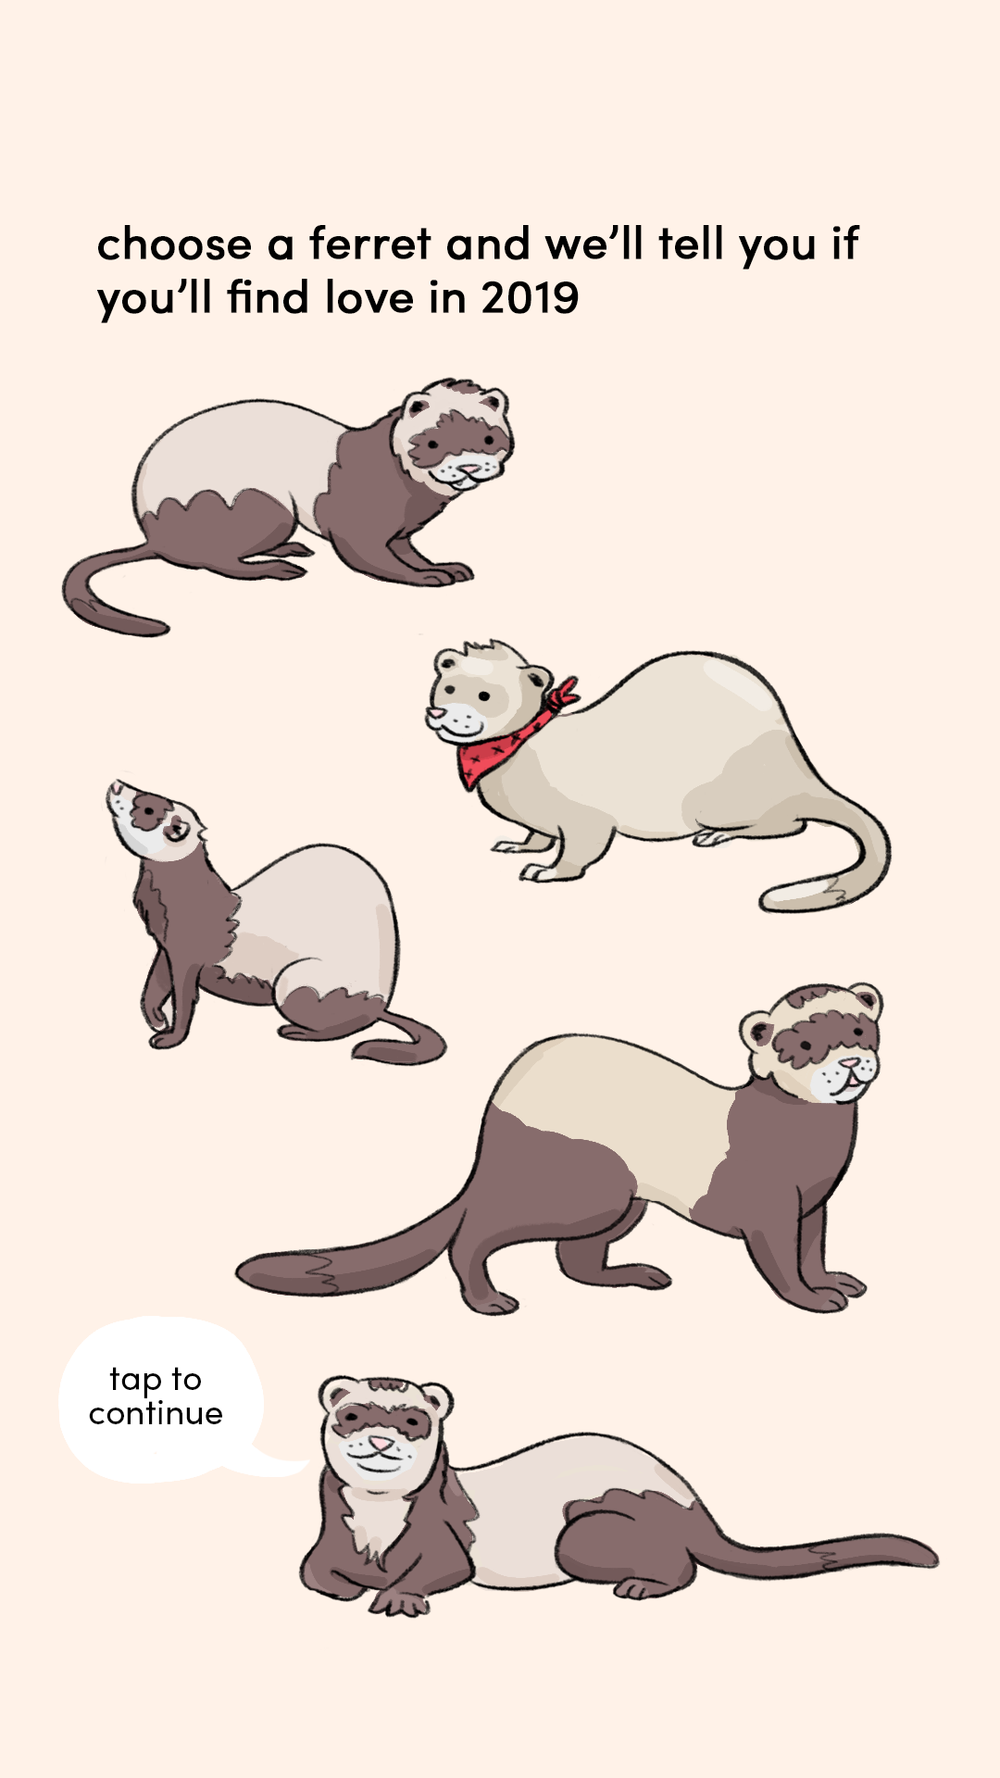 choose a ferret 1.png